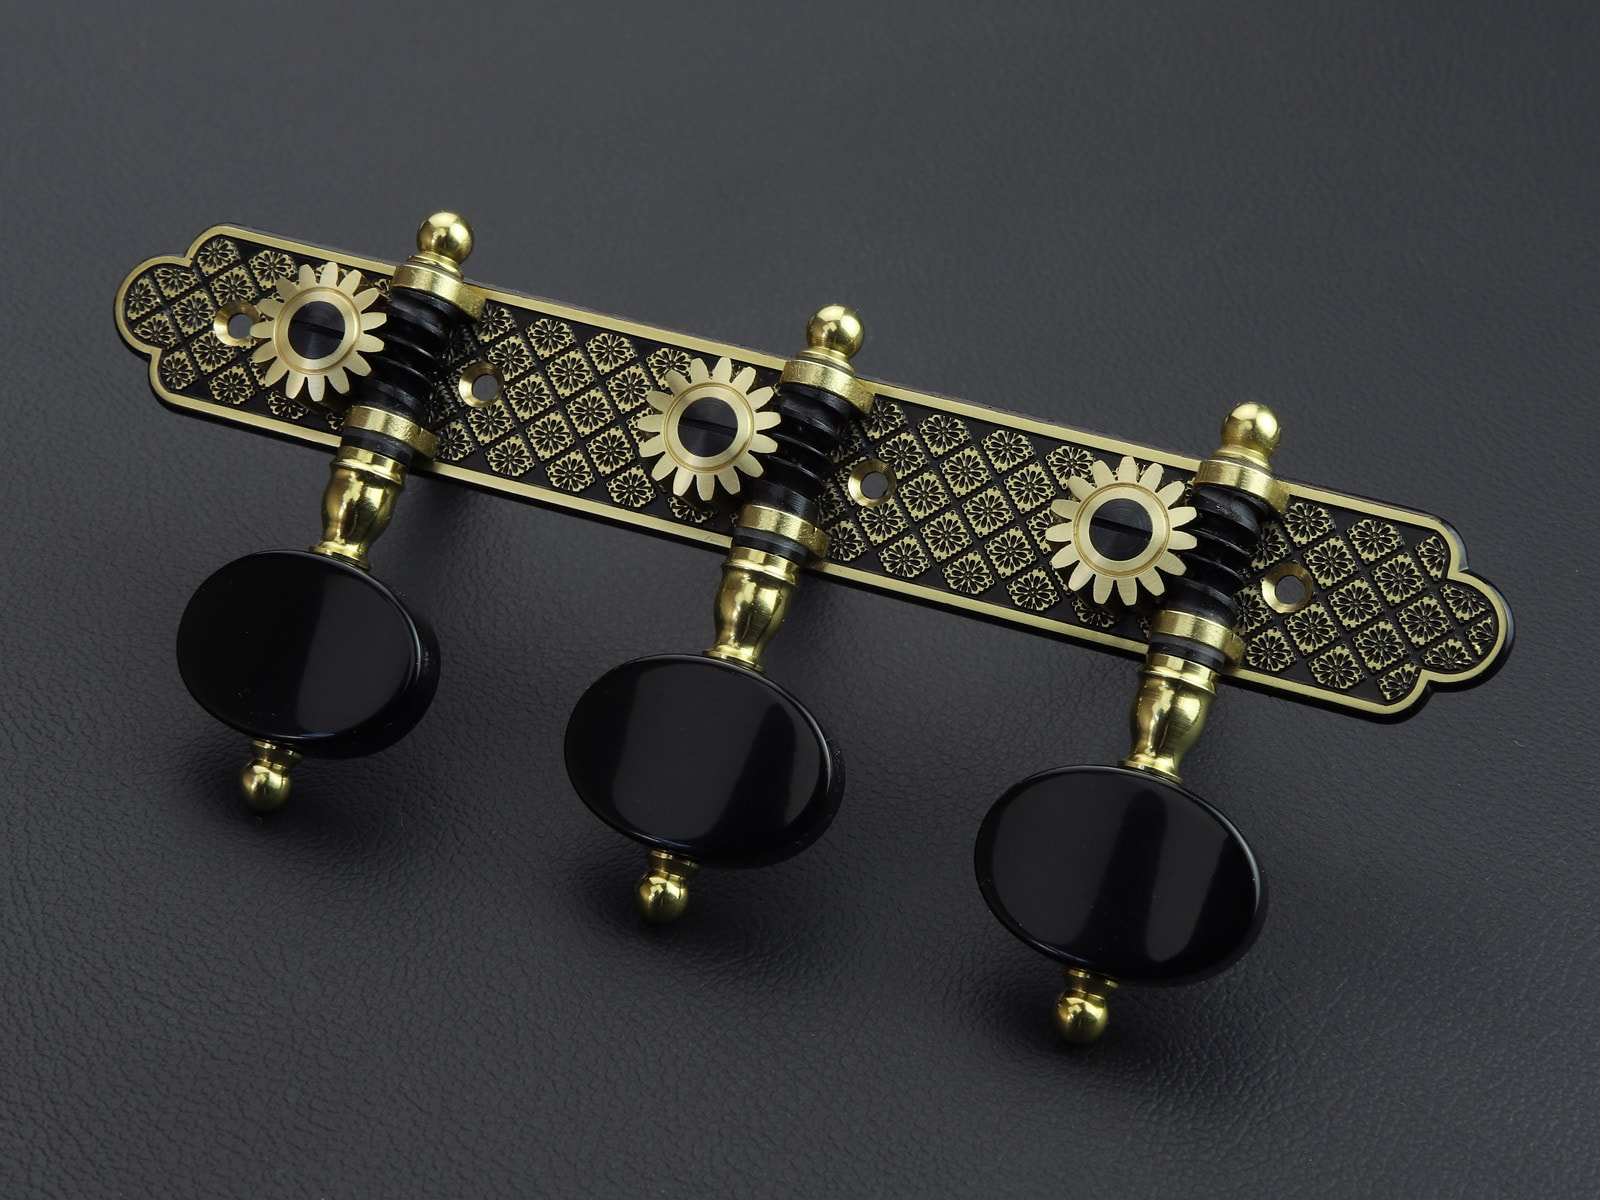 L709 Jet Blackened - Rodgers Tuning Machines